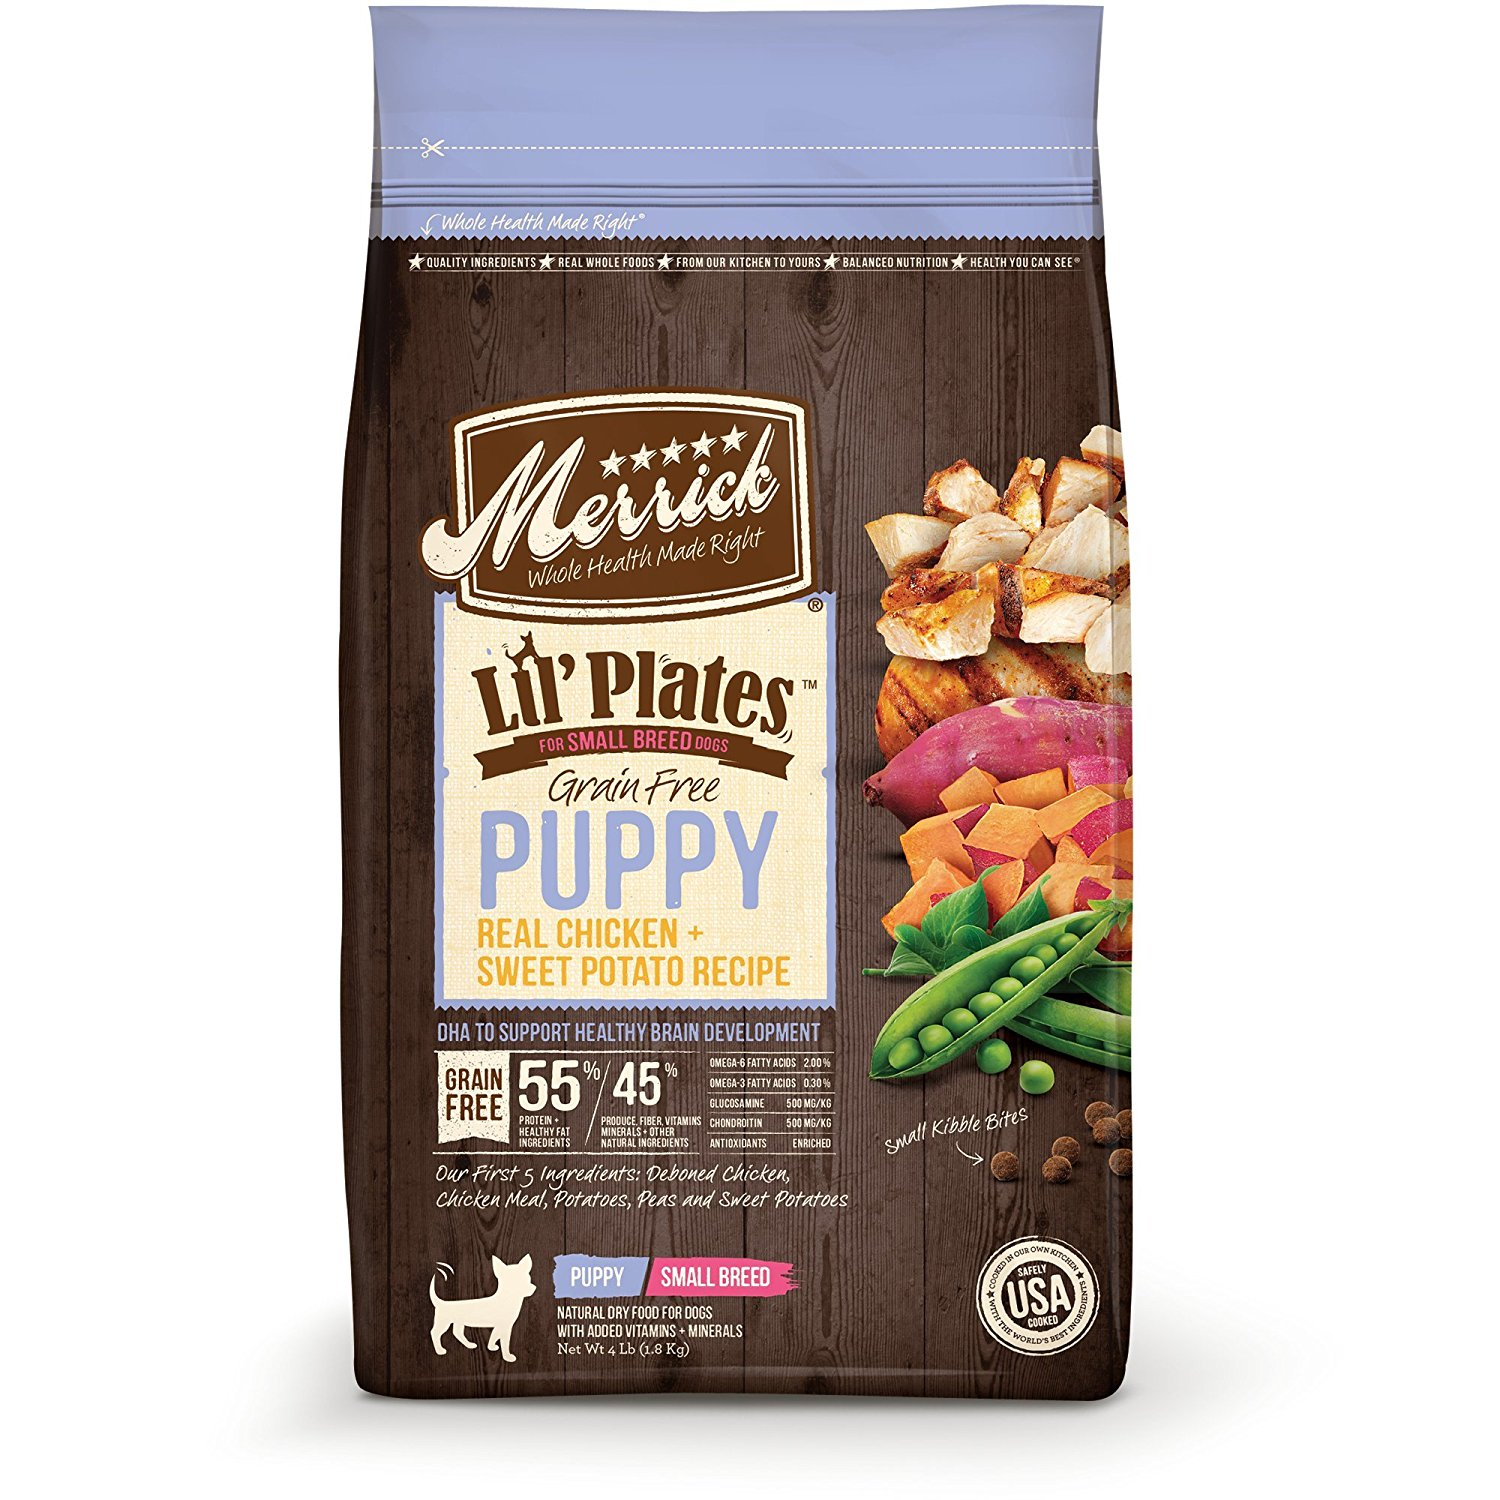 Merrick Lil' Plates Grain Free Real Chicken + Sweet Potato Small Breed Dry Puppy Food, 4 lbs. by Merrick Pet Care